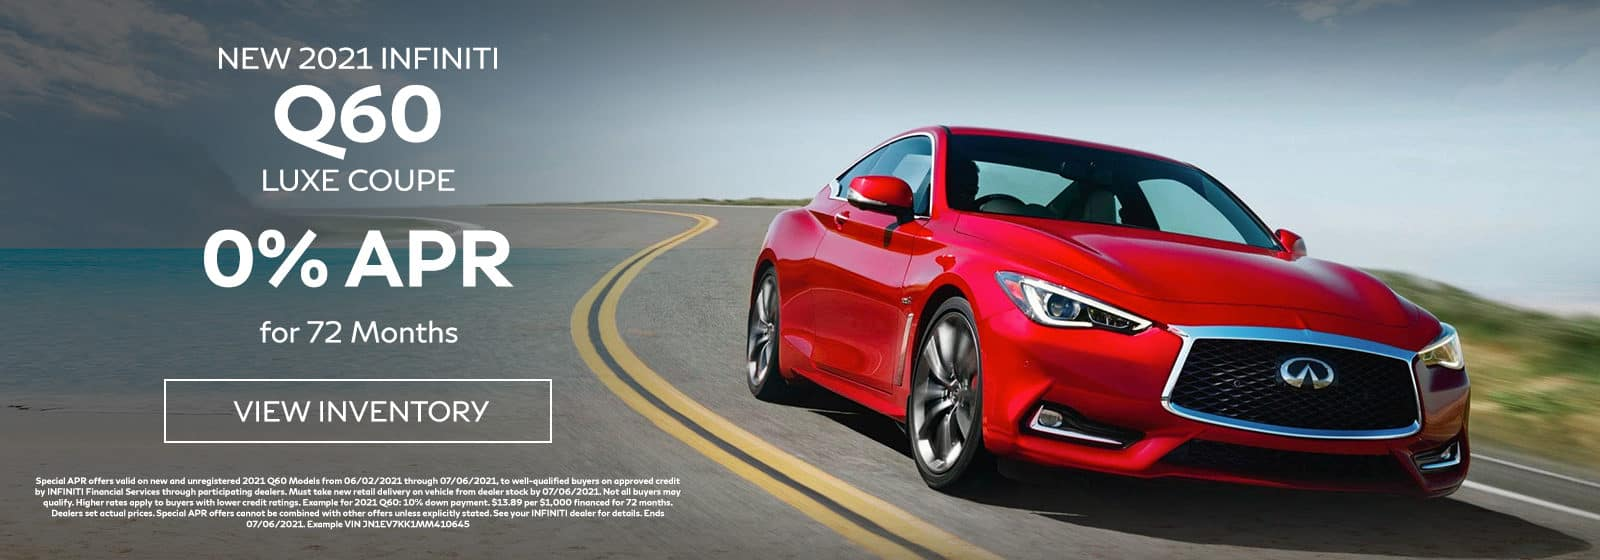 Q60 - 2021 INFINITI Q60 LUXE COUPE, 0% APR for 72 Months. Offer expires 7/6/2021.